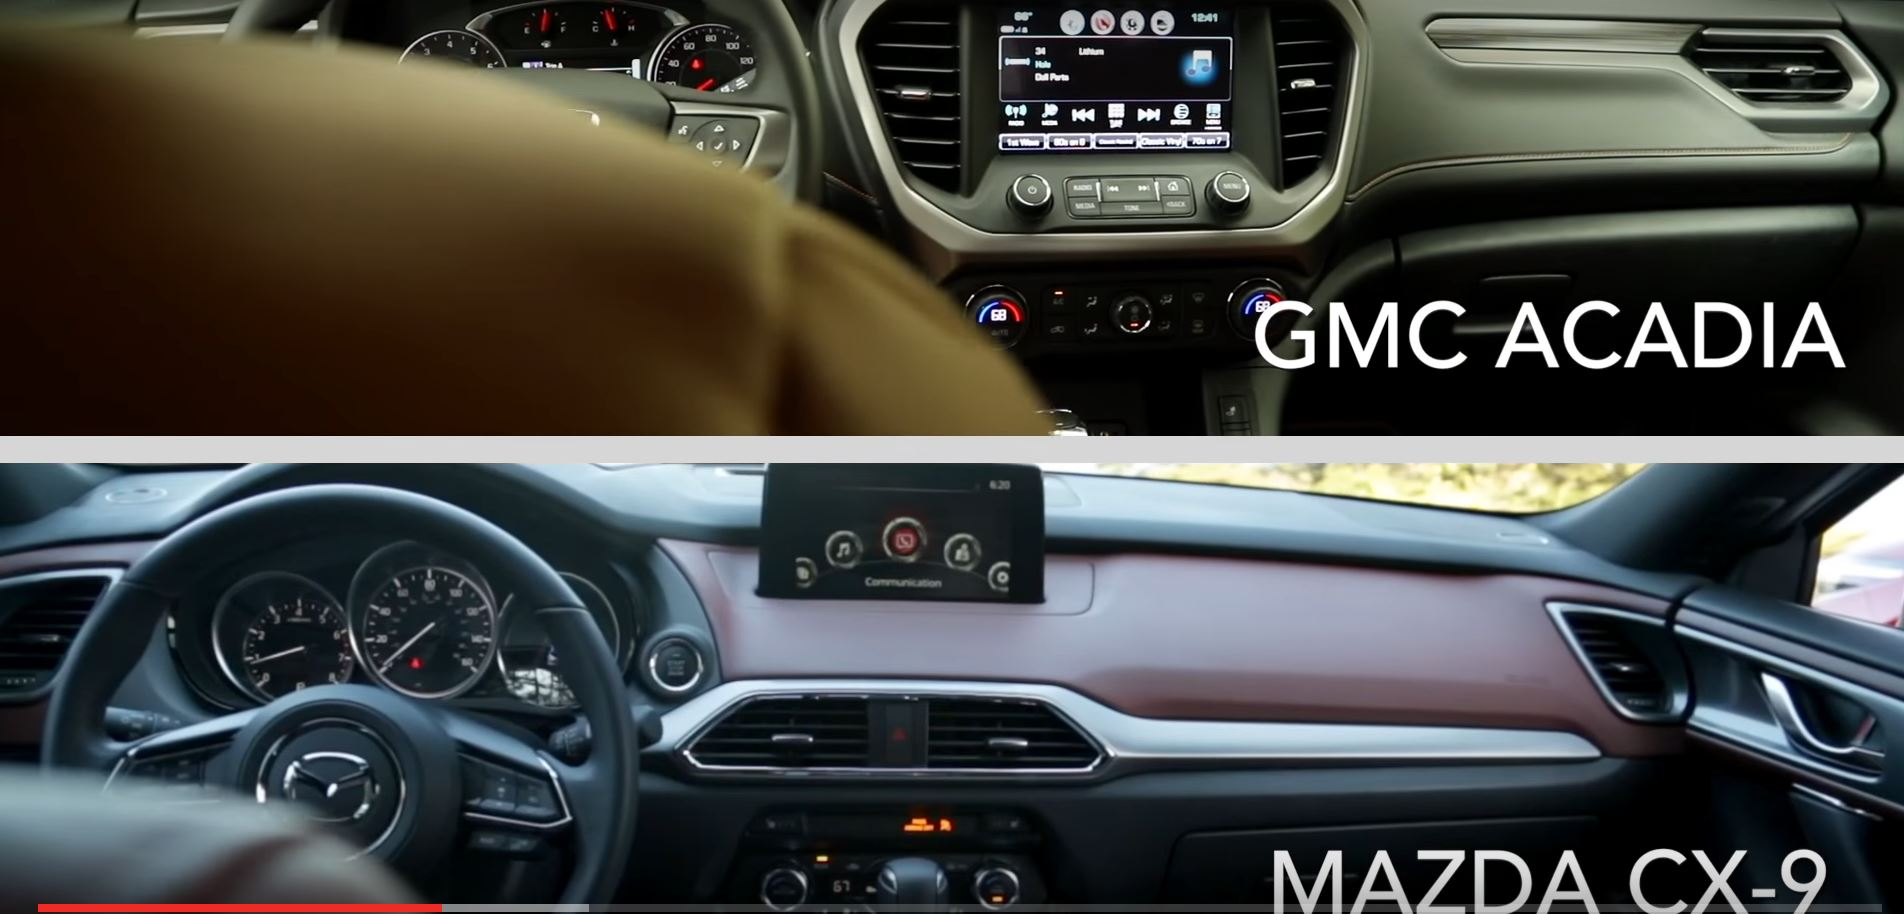 There S No Clear Best Midsize Suv For 2017 2018 Says Kbb Comparison